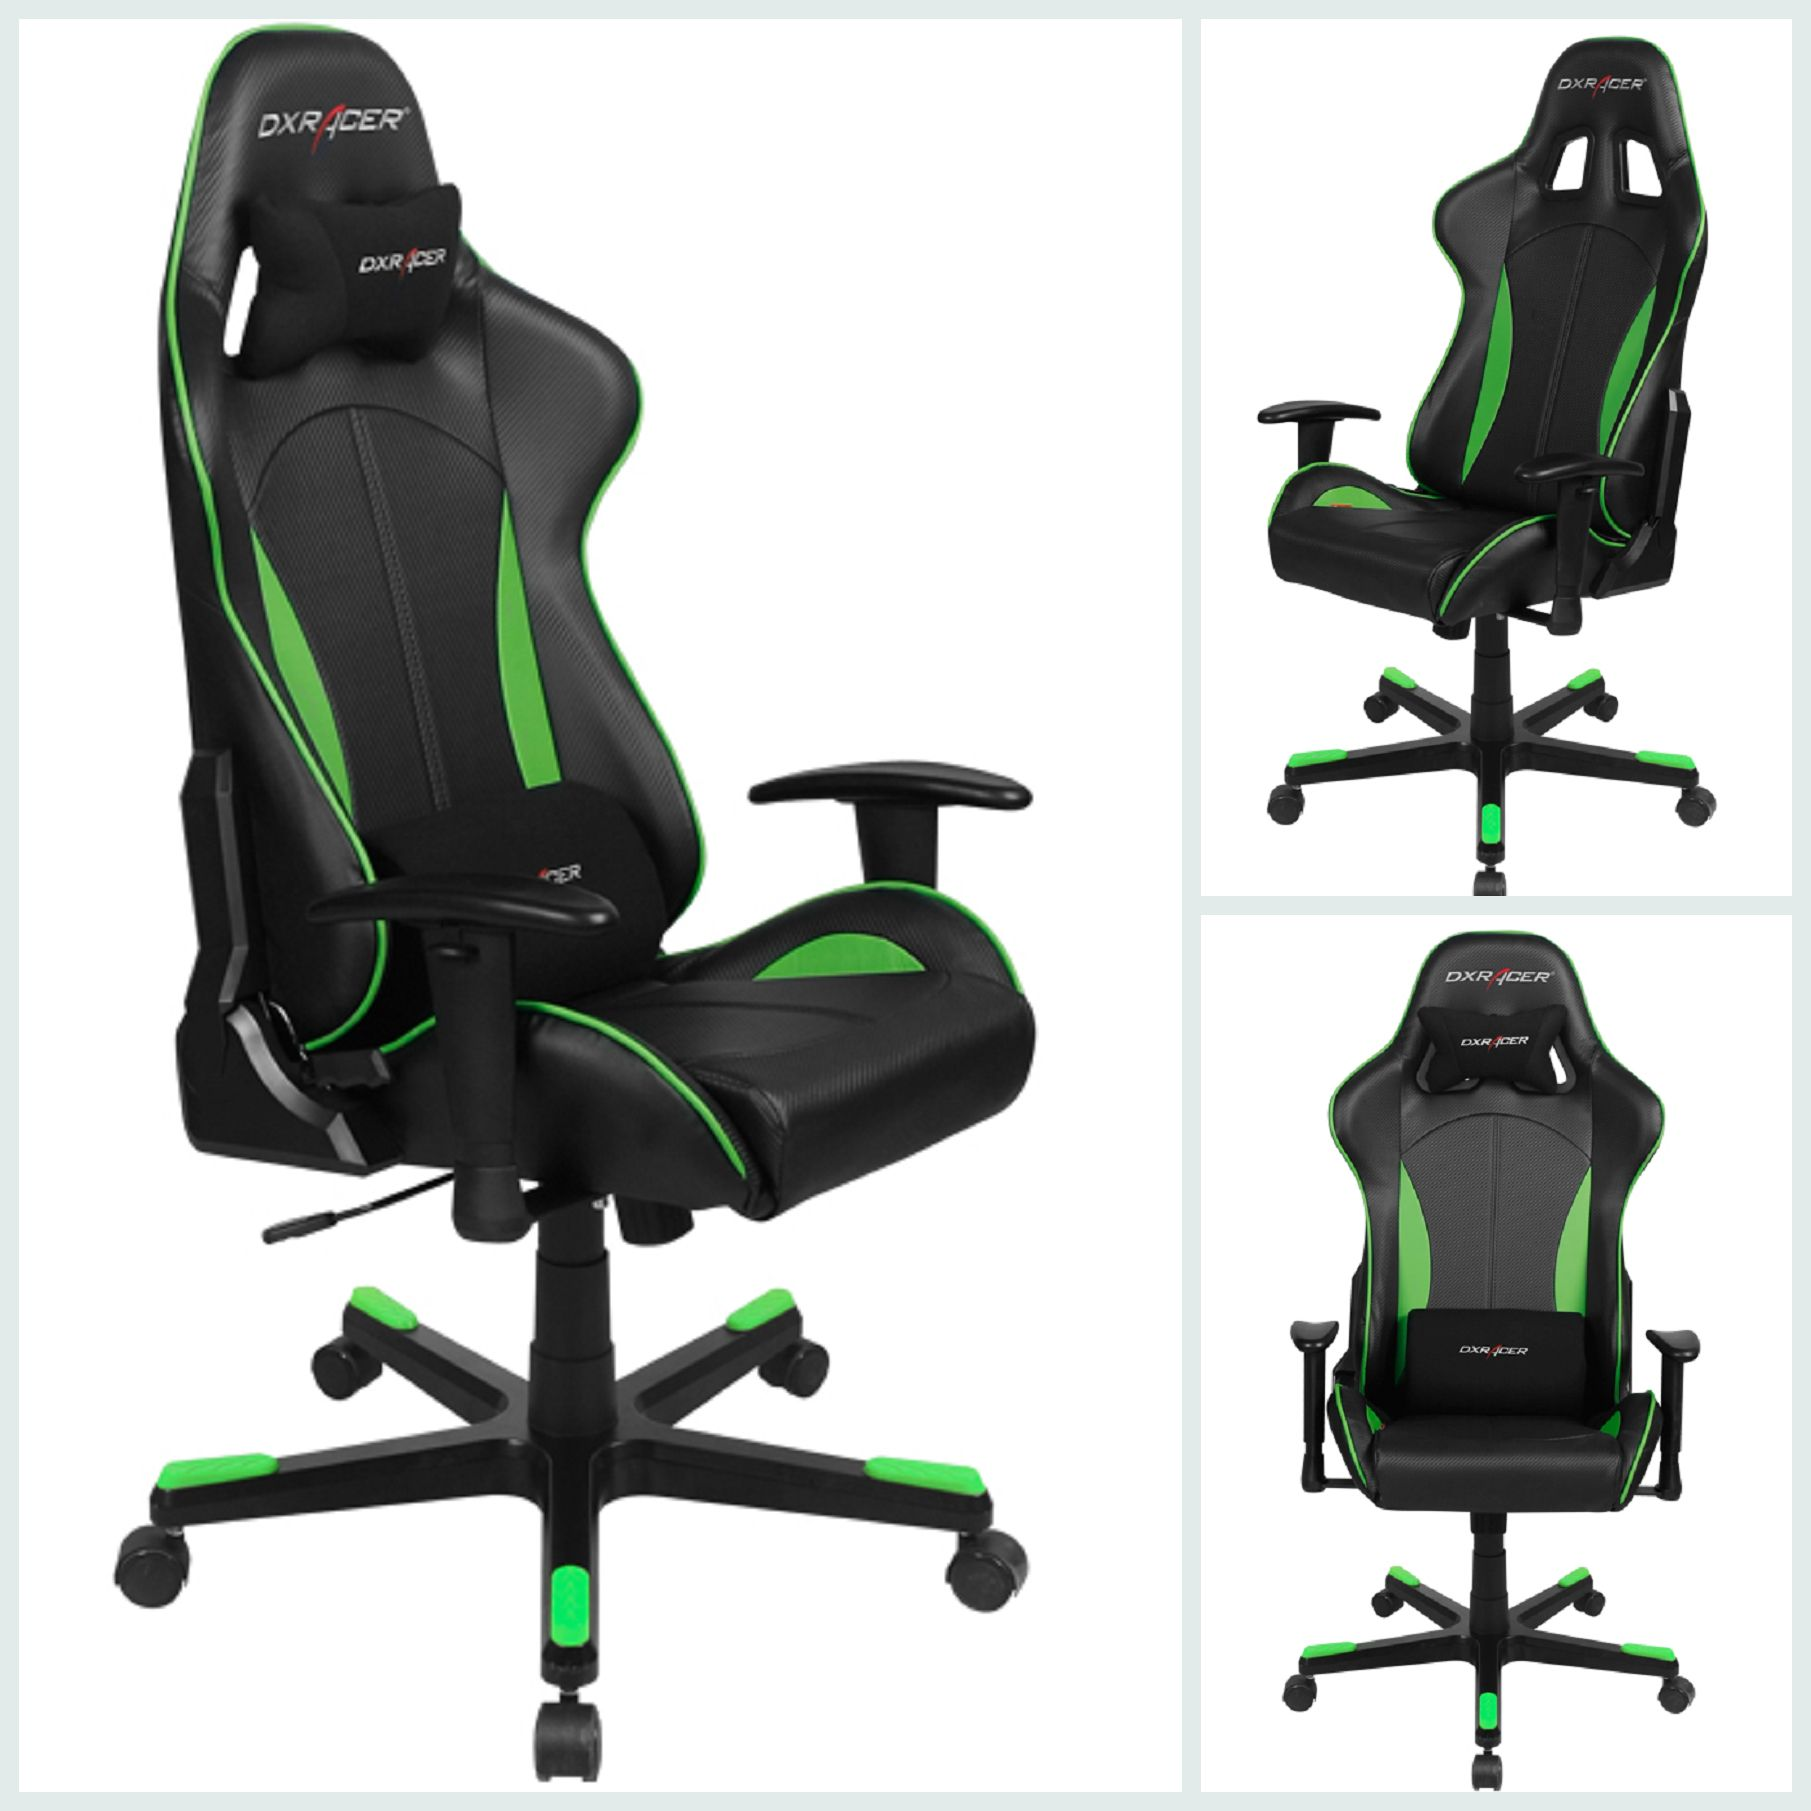 Dxracer Green Color Chair Fe57ne Homedecor Furniture Onsale